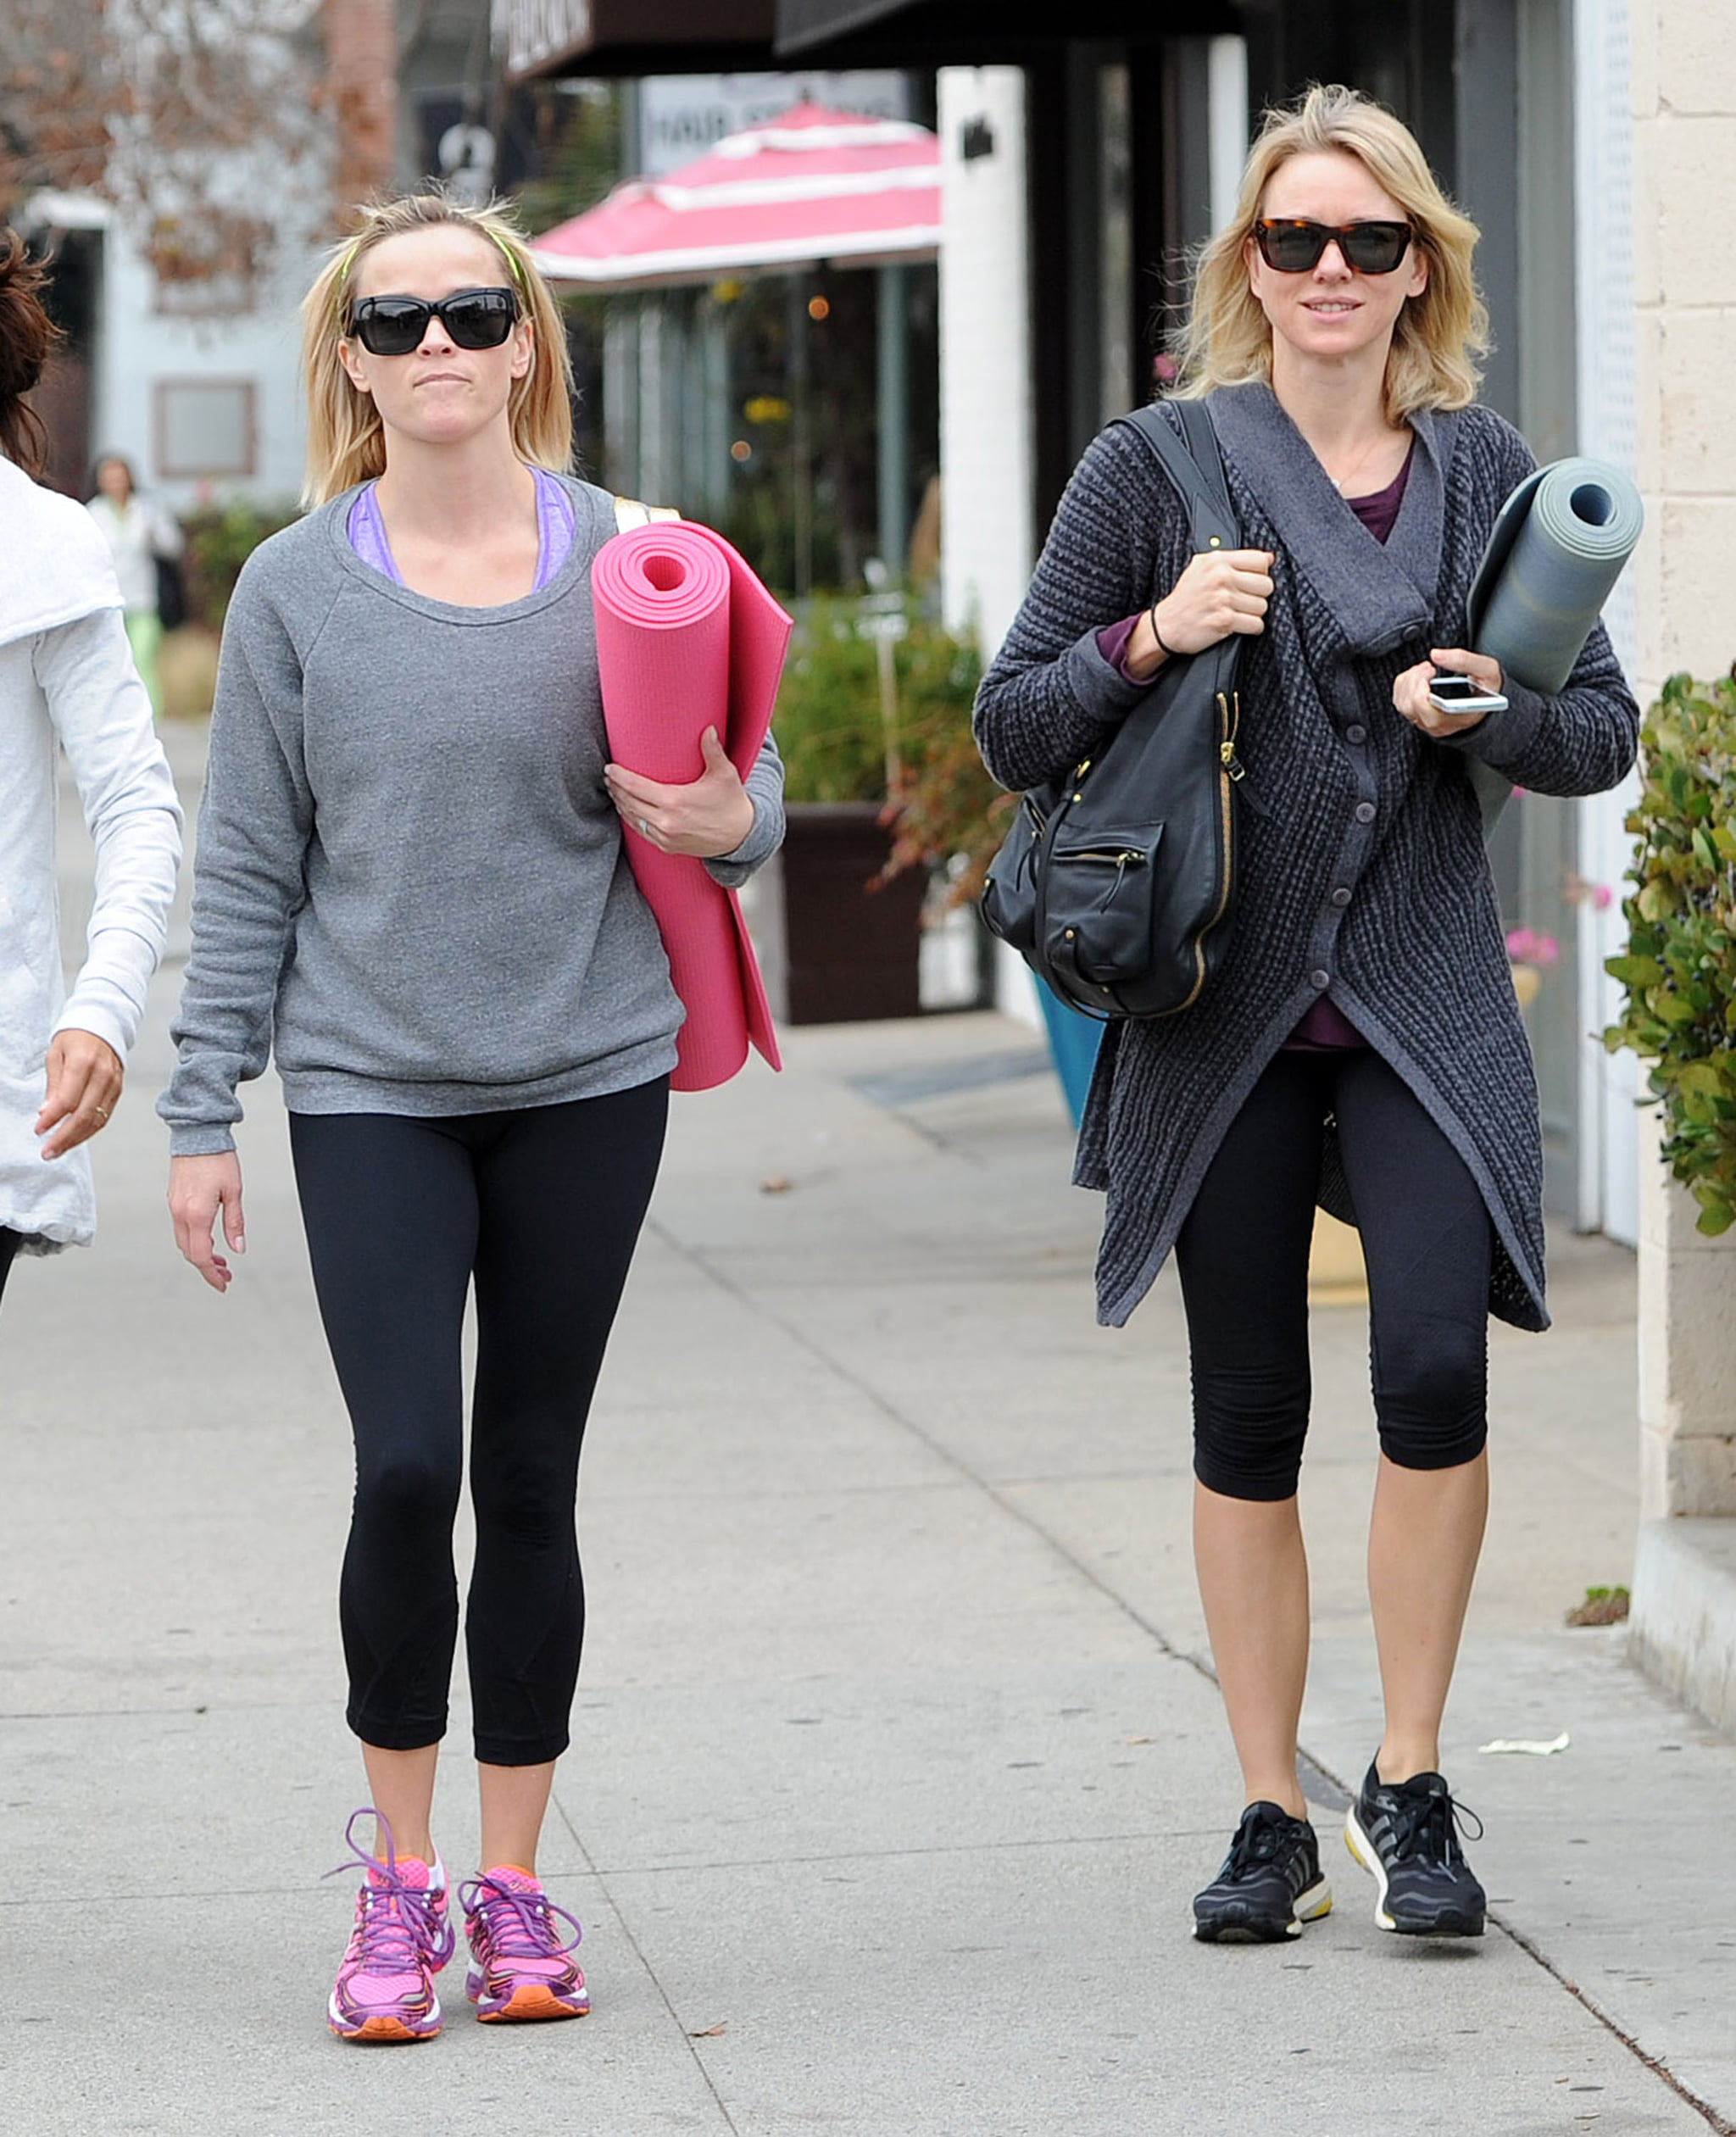 Reese Witherspoon and Naomi Watts